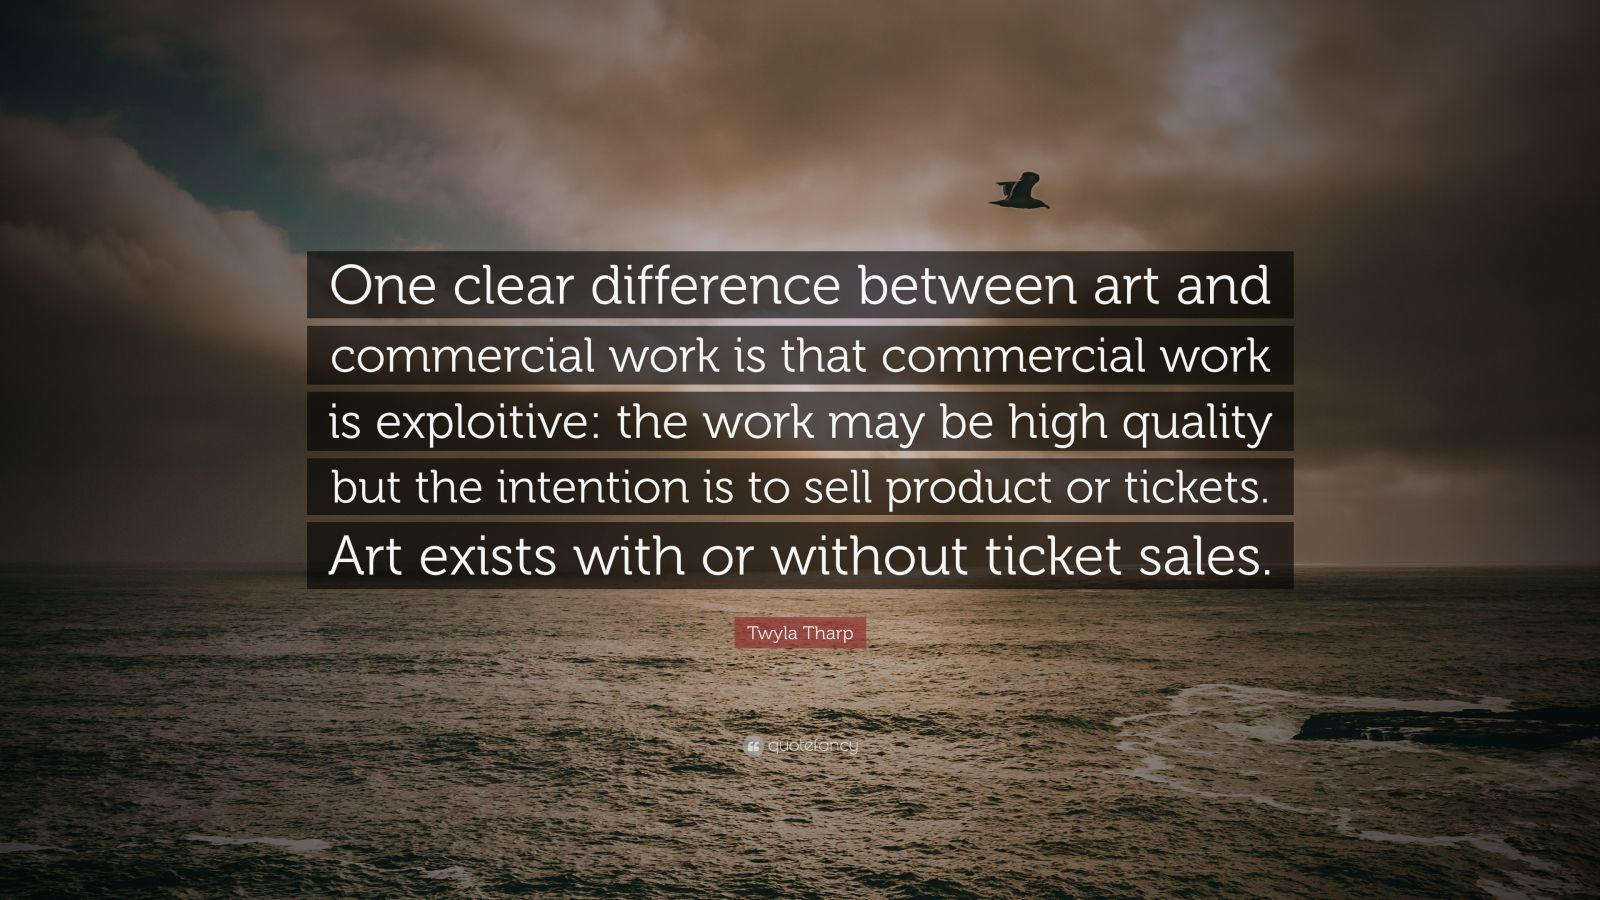 """Twyla Tharp Quote: """"One clear difference between art and commercial work is that commercial work is exploitive: the work may be high quality but the intention is to sell product or tickets. Art exists with or without ticket sales."""""""